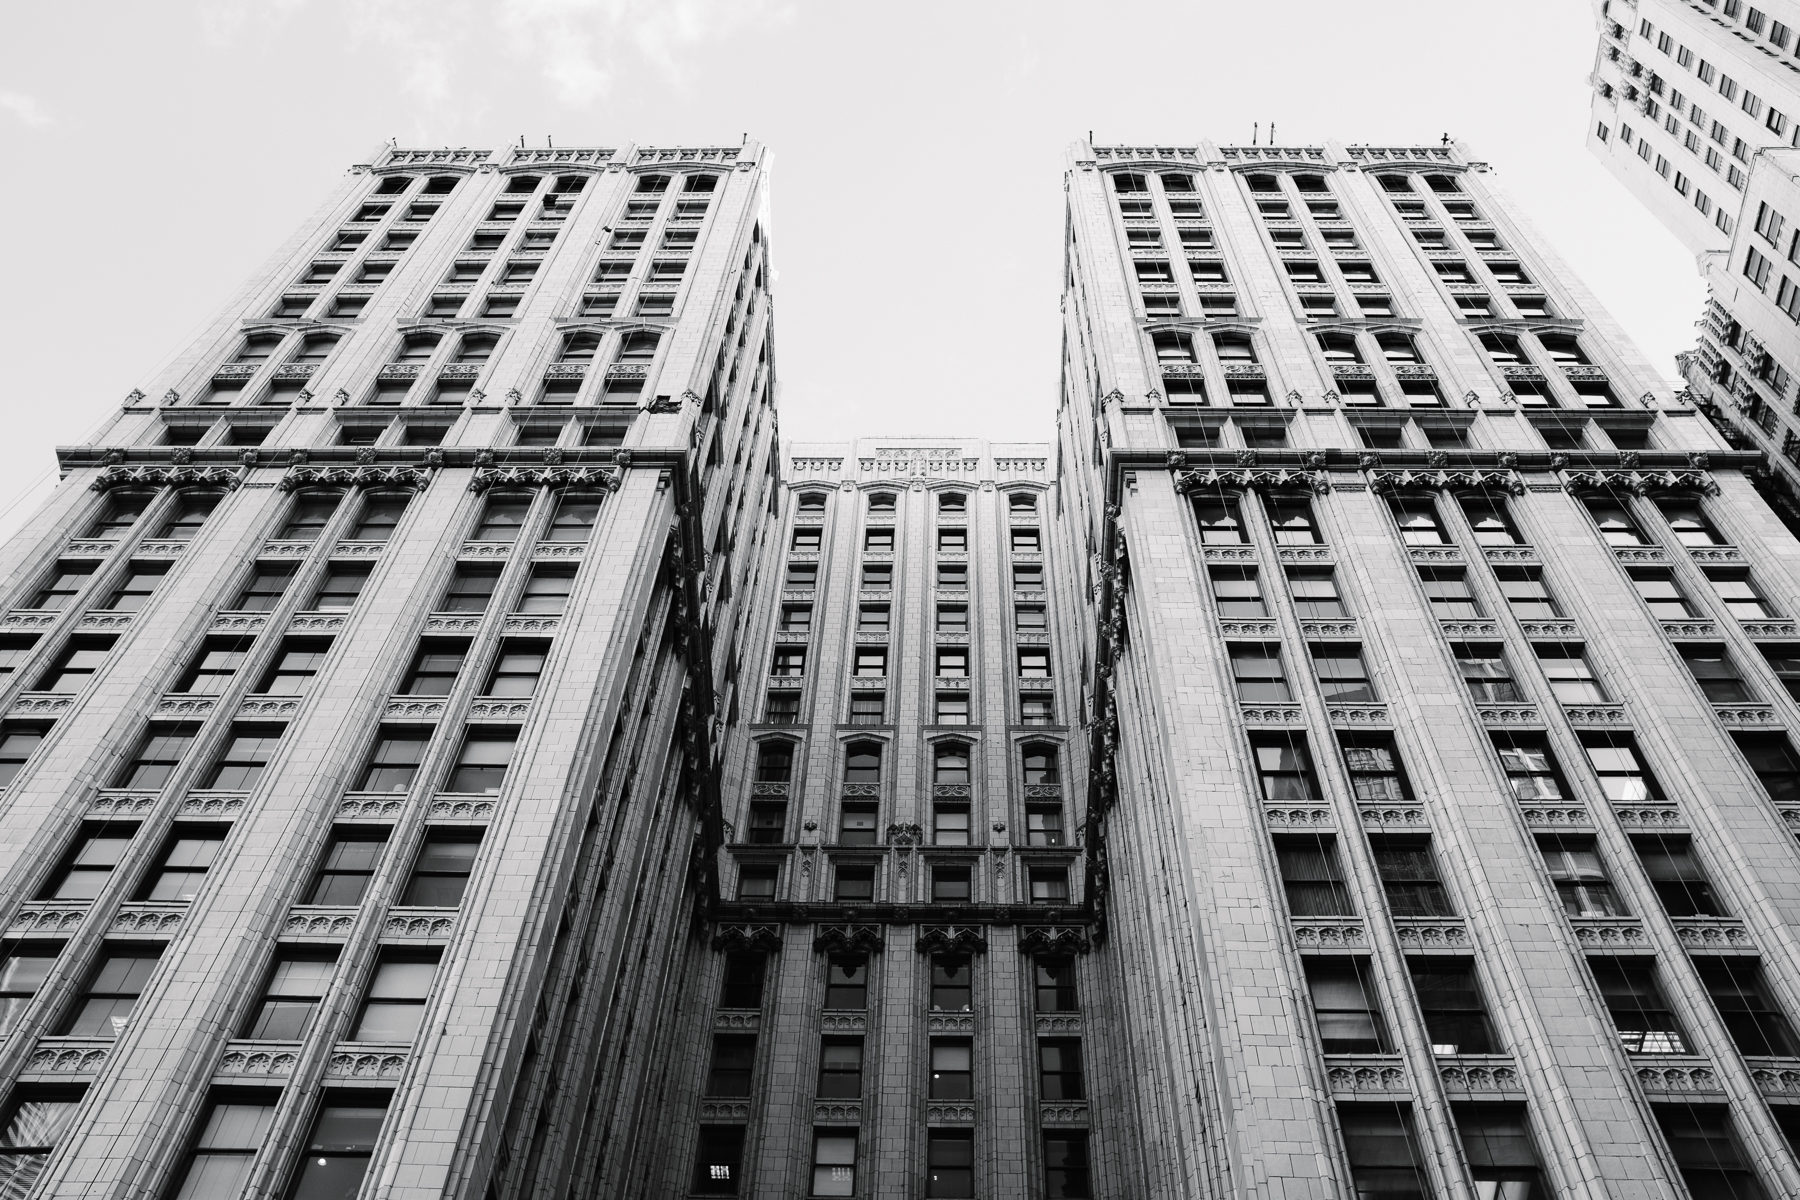 The tall buildings command such presence in the city.